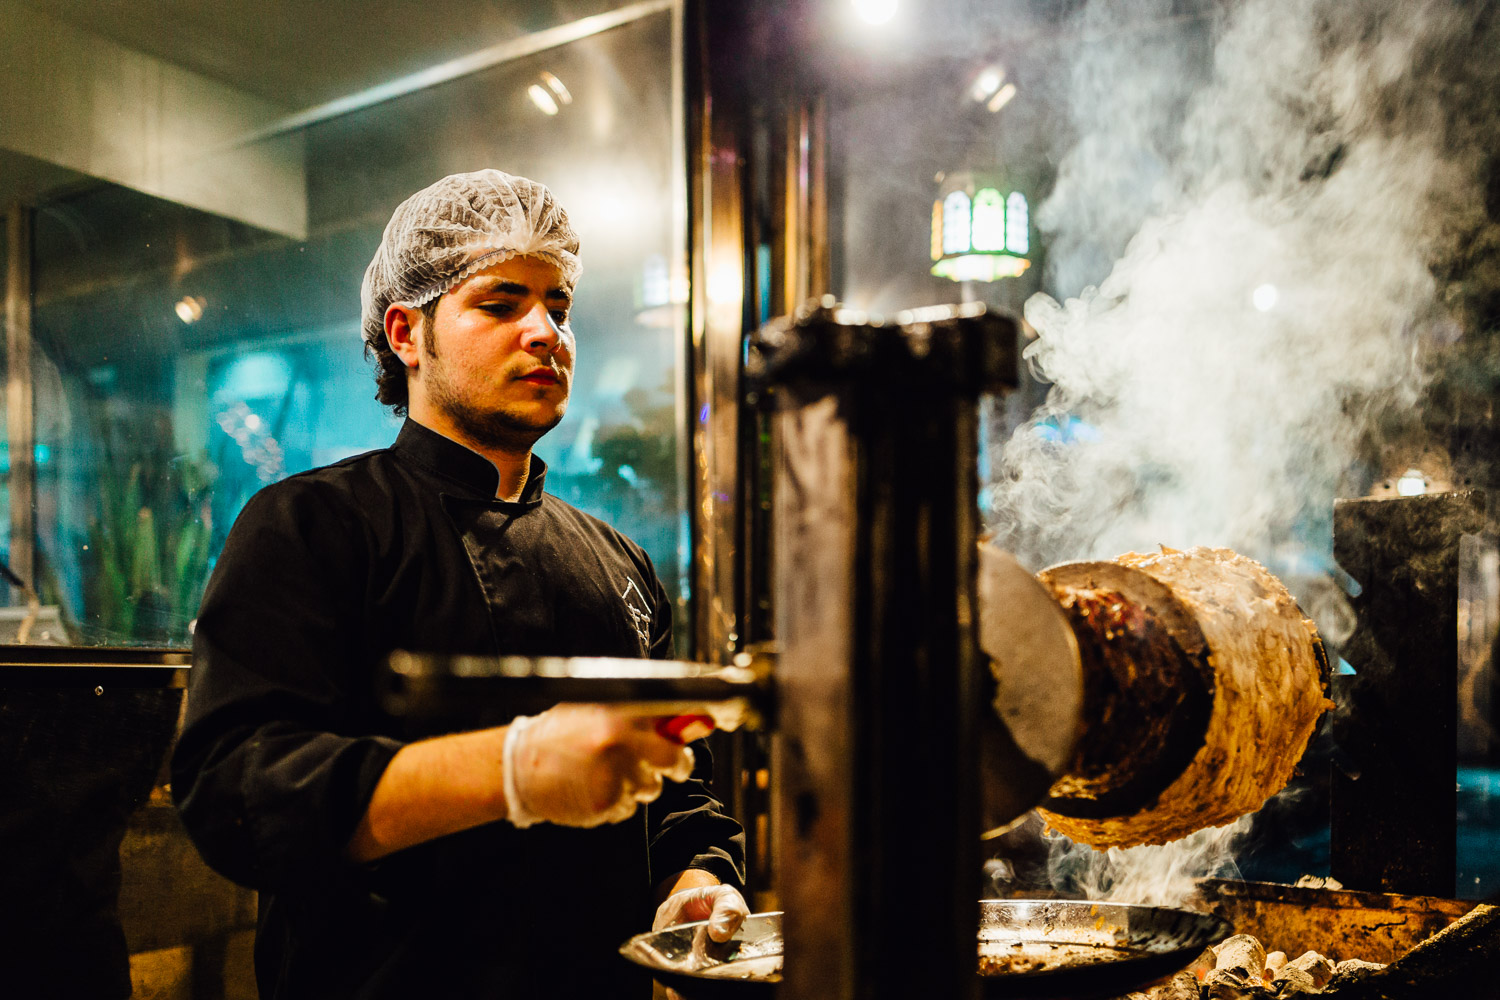 Food-Cooking-Smoke-Meat-Durazo-Photography-Project-Travel-Street.jpg